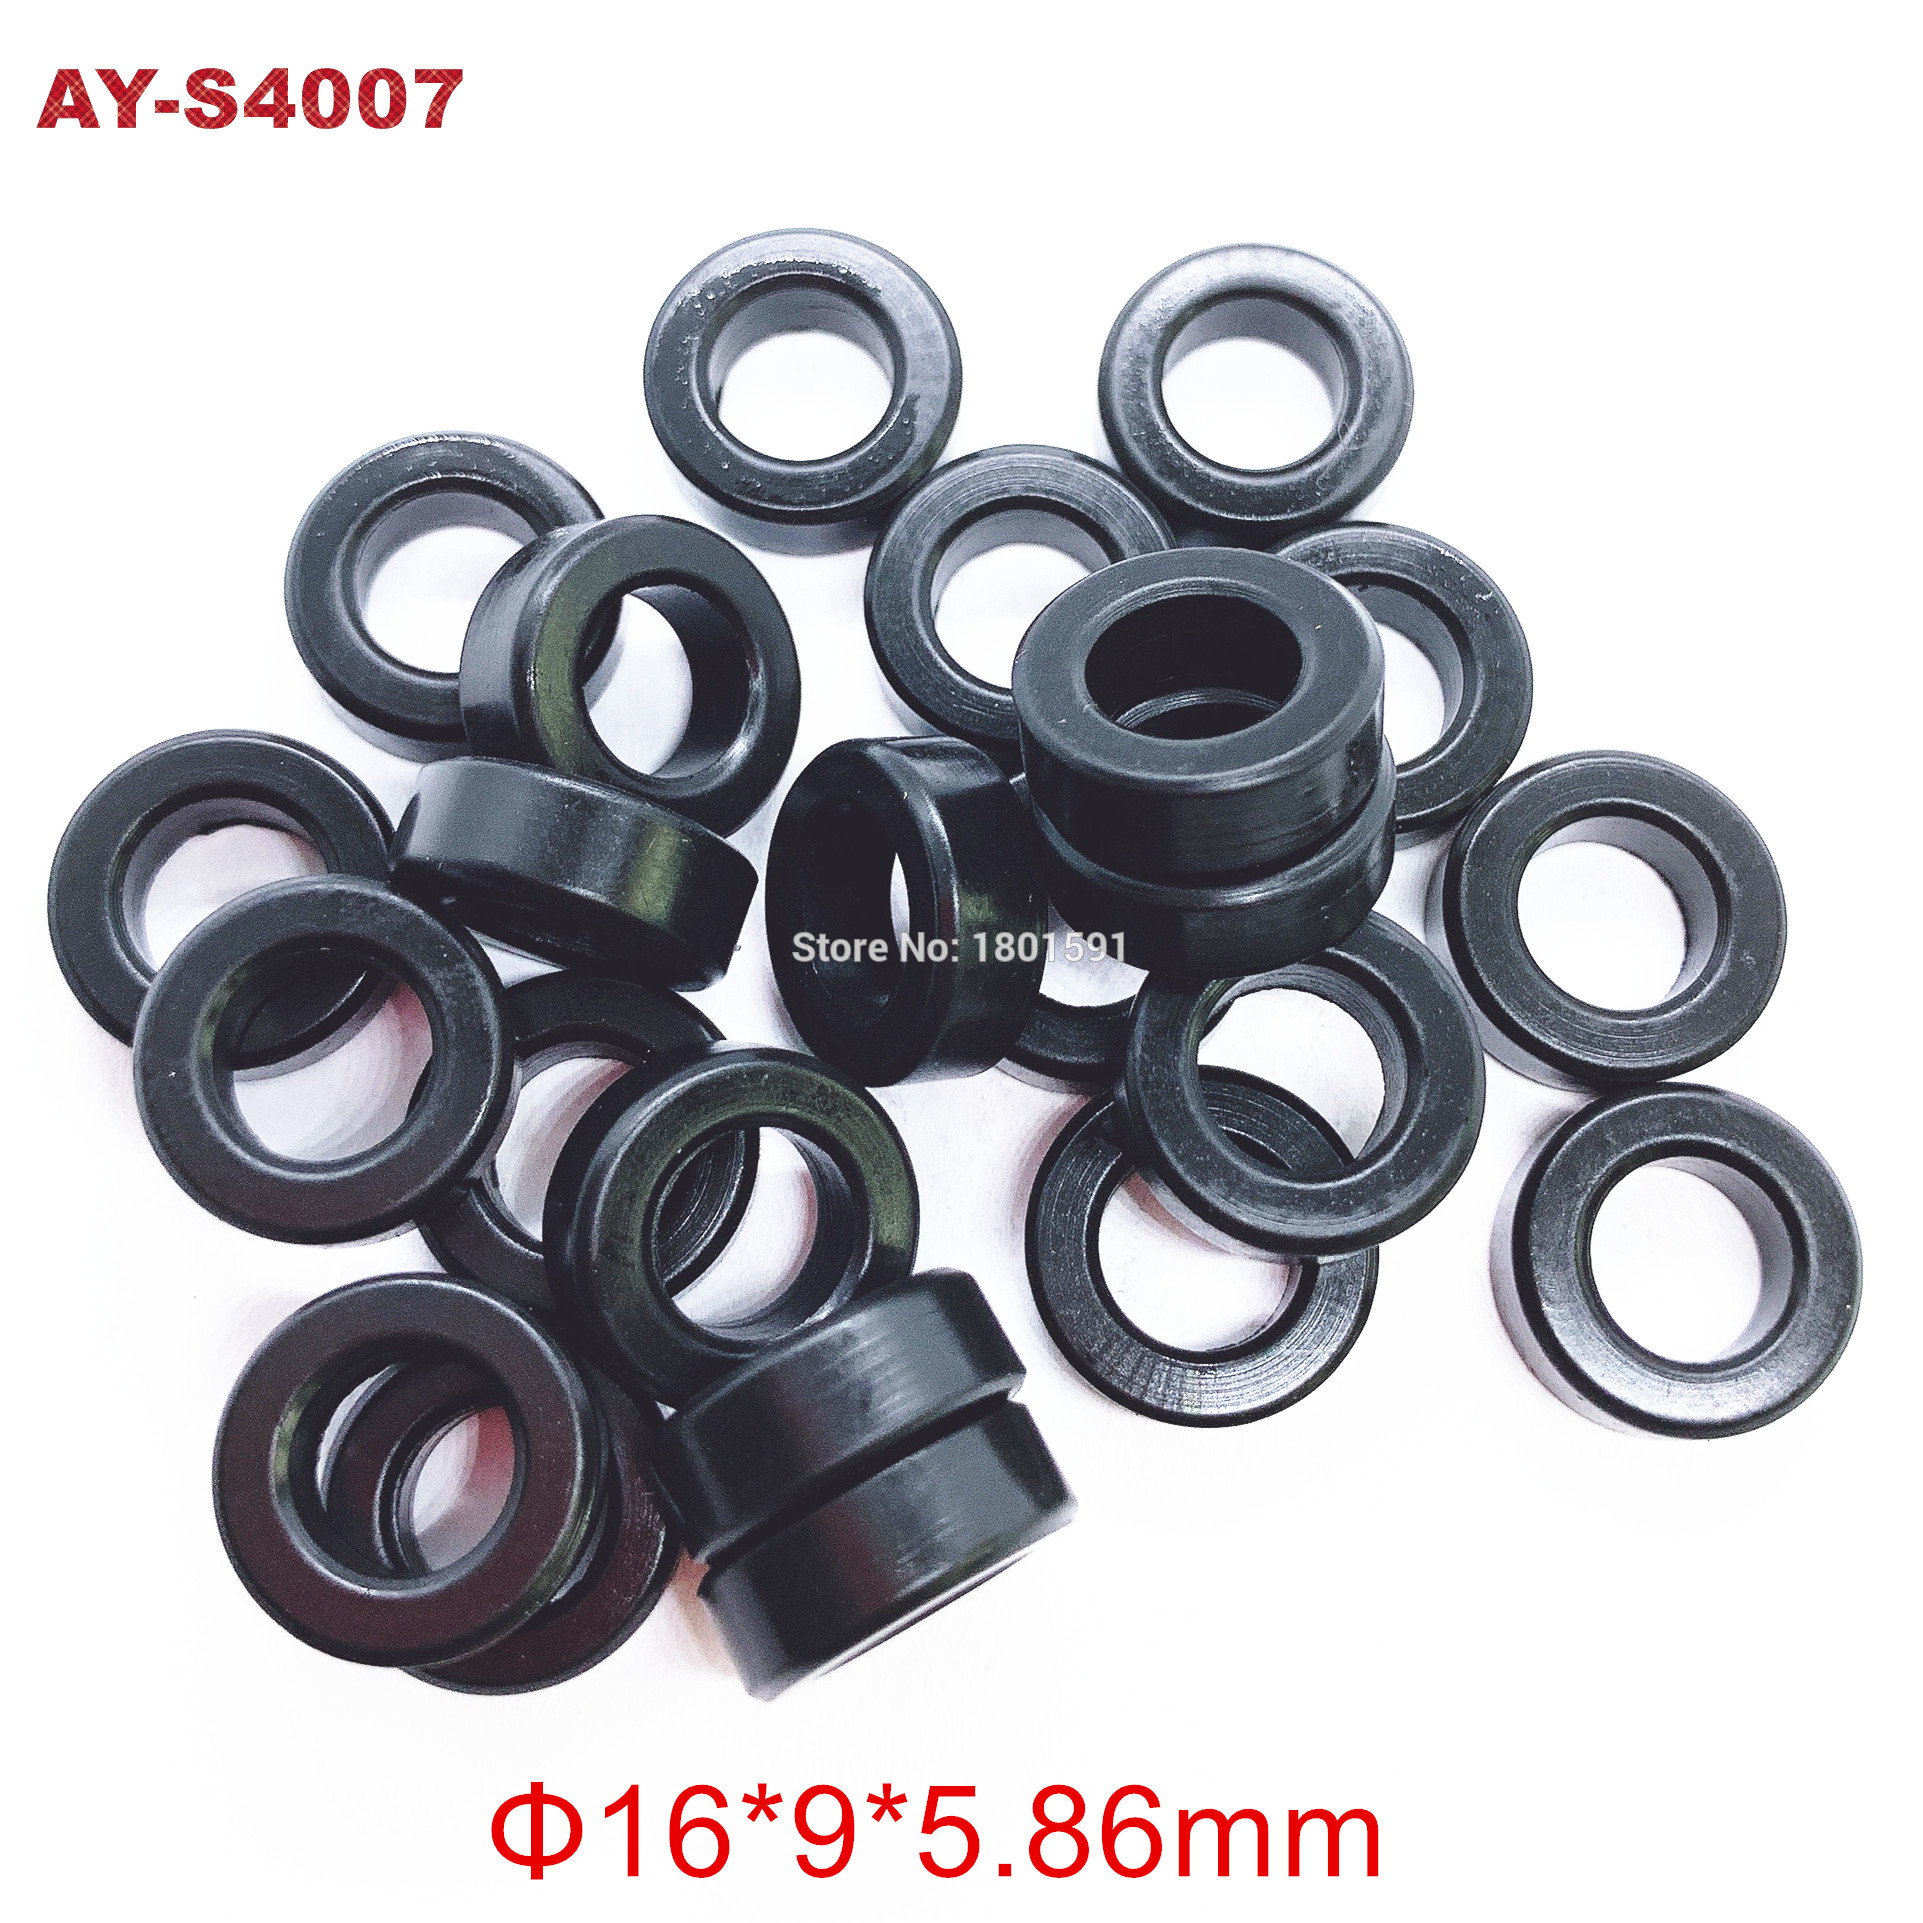 free shipping 500pieces for toyota fuel injector lower rubber seals oring 23291-23010,23291-41010 (AY-S4007)